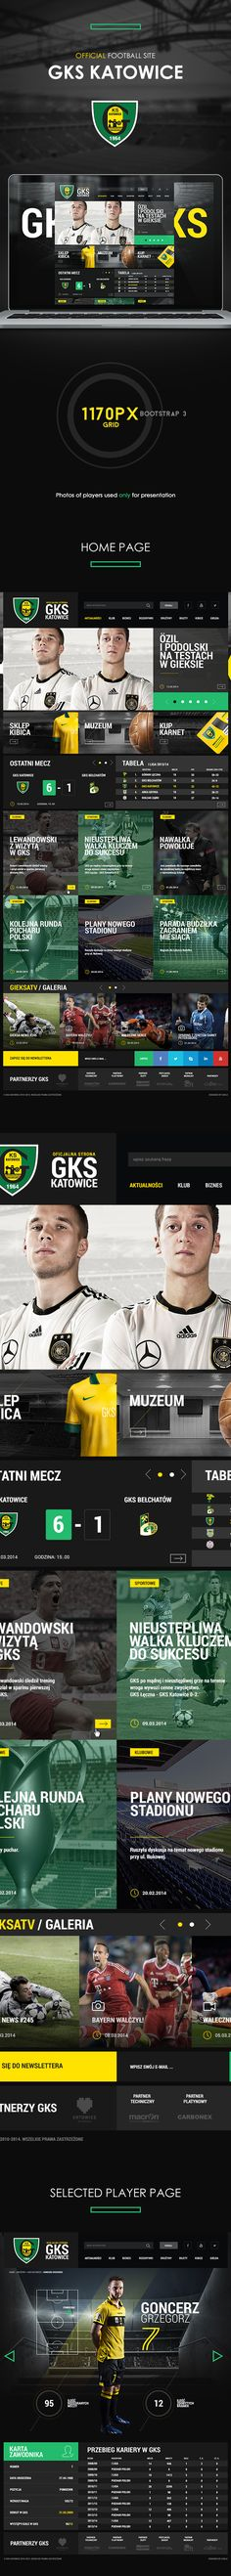 Official Football Site - GKS Katowice on Web Design Served